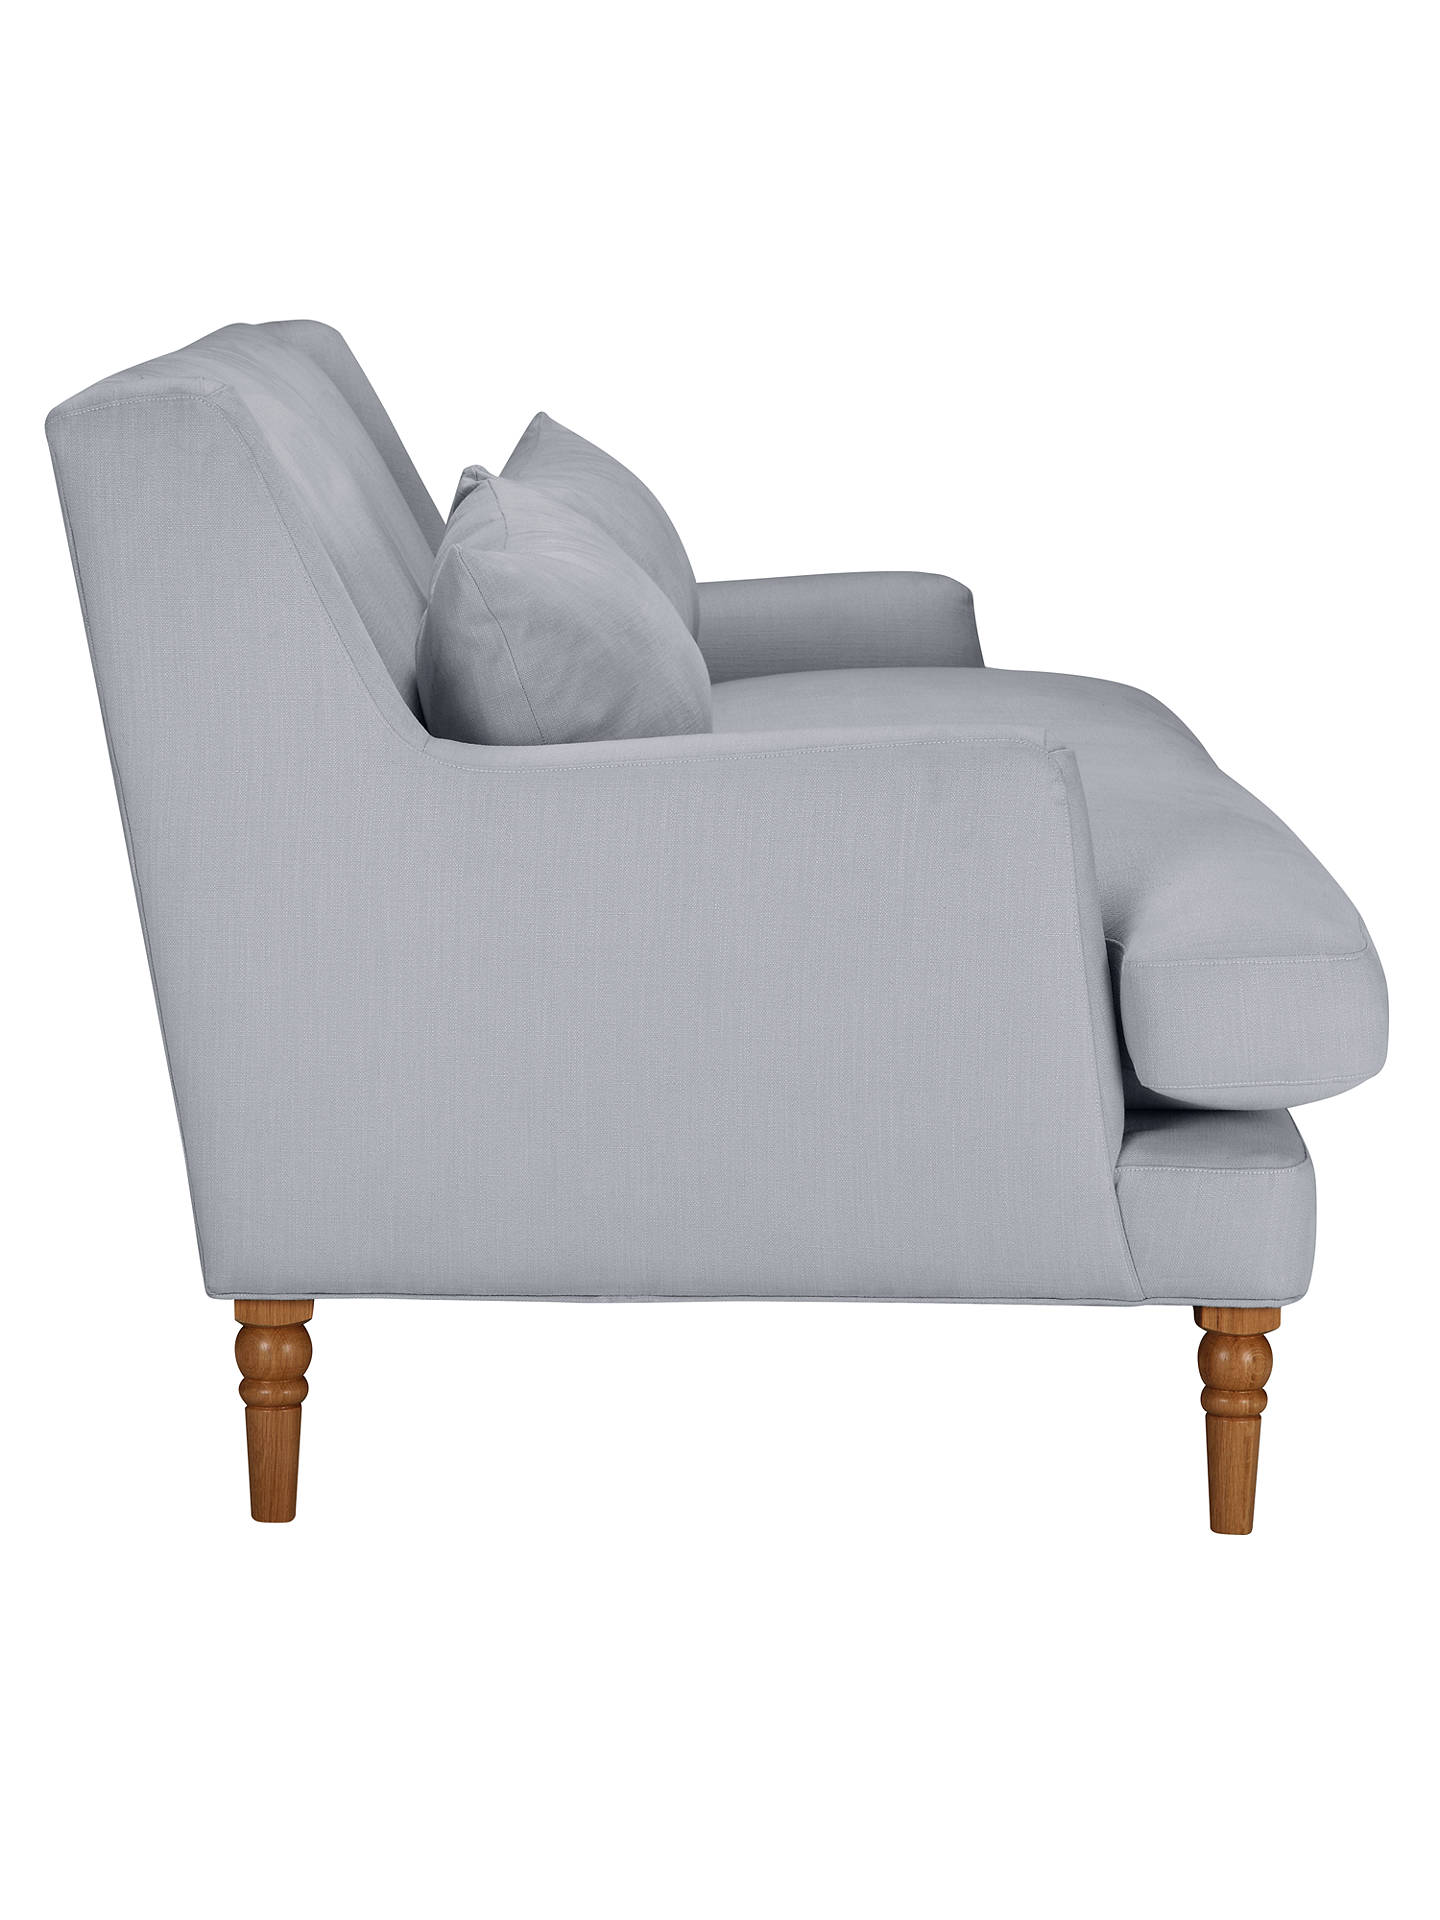 Buy John Lewis Berwick Croft Collection Large Sofa, Pier French Grey Online at johnlewis.com